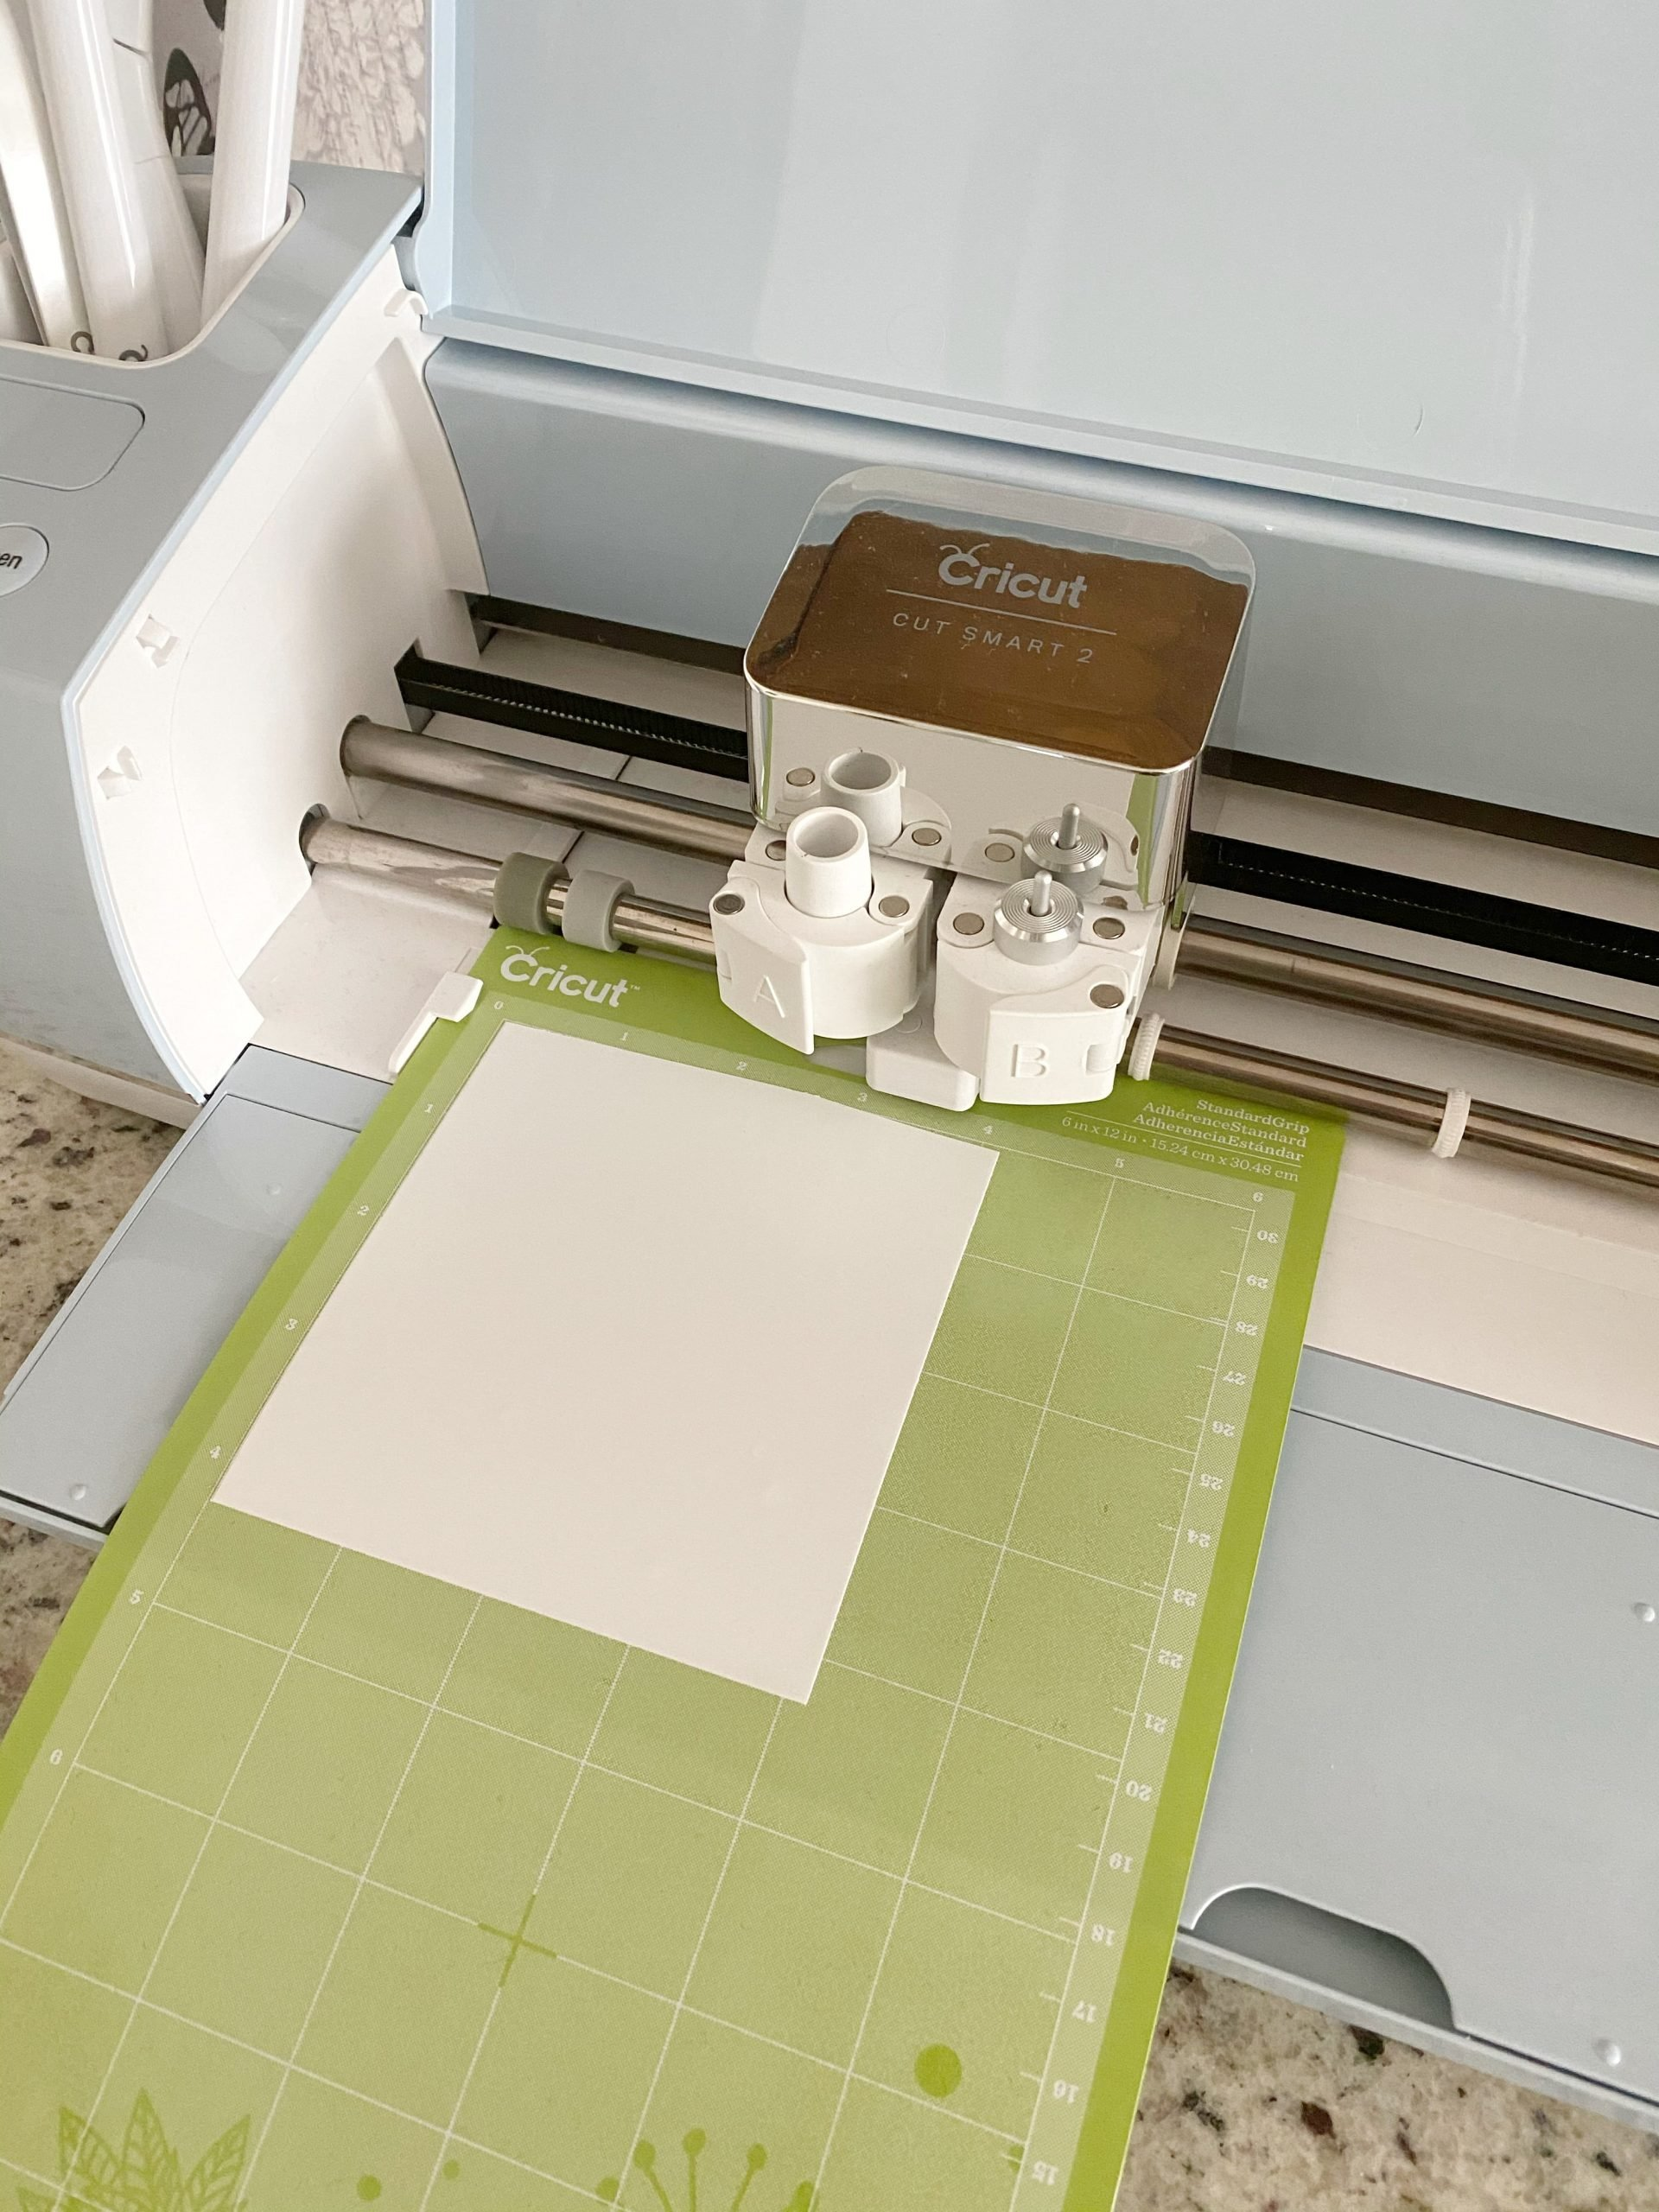 Cricut machine cutting stencil